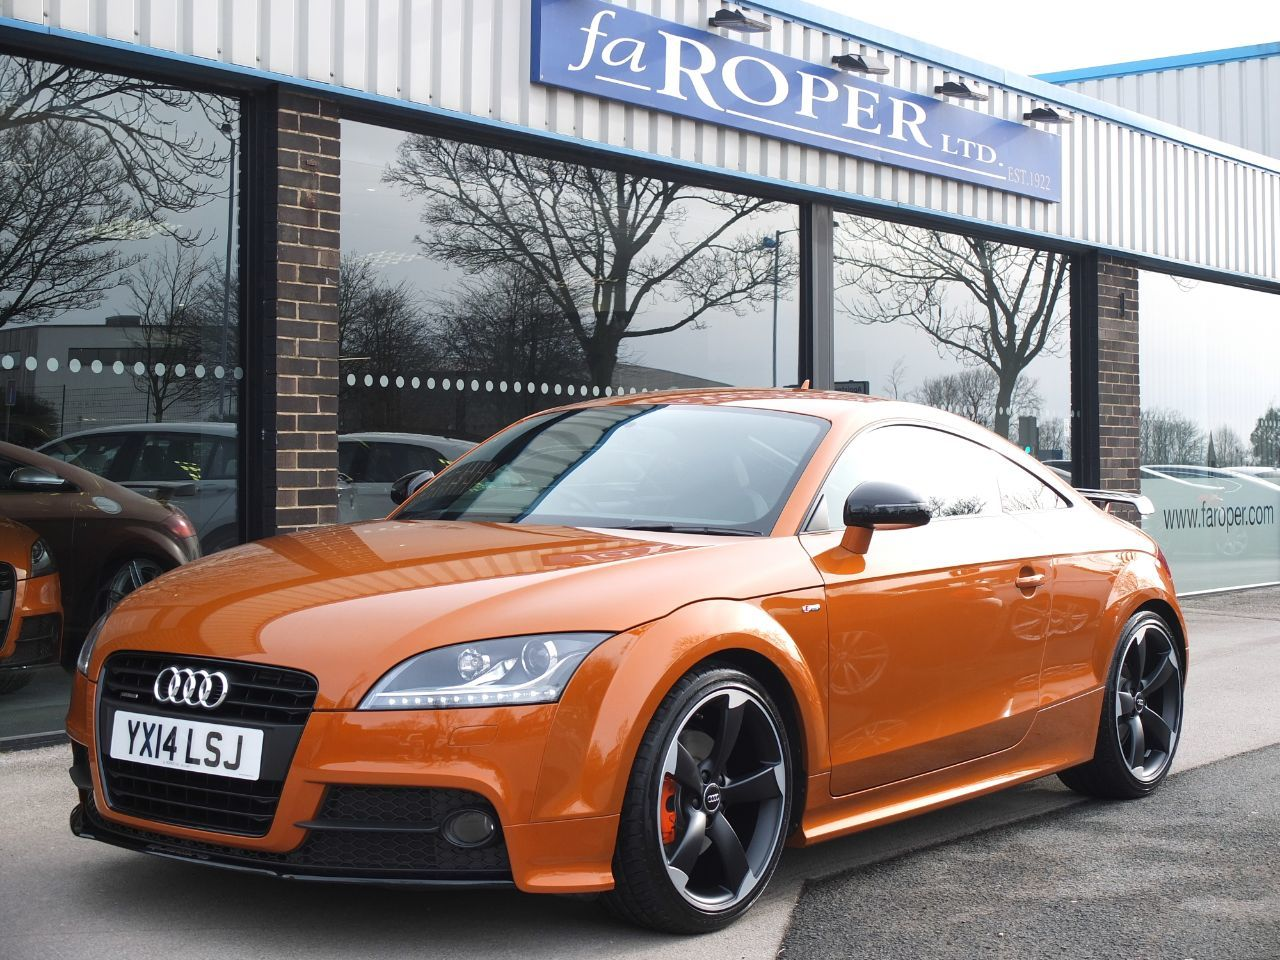 Audi TT 2.0 TDI Quattro Black Edition S Tronic (Amplified Edition ++Spec) Coupe Diesel Samoa Orange MetallicAudi TT 2.0 TDI Quattro Black Edition S Tronic (Amplified Edition ++Spec) Coupe Diesel Samoa Orange Metallic at fa Roper Ltd Bradford